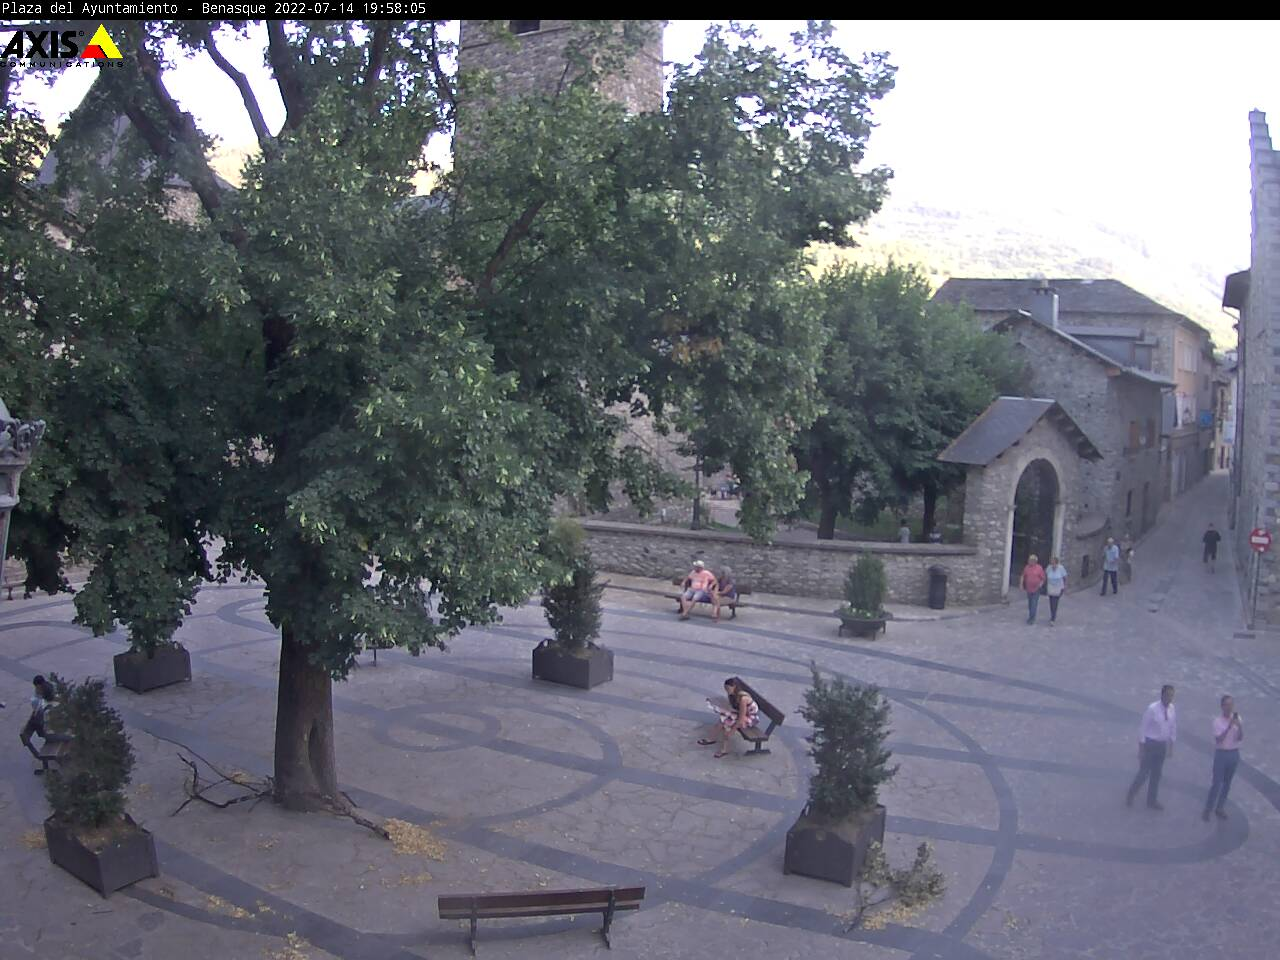 Plaza del Ayuntamiento de Benasque